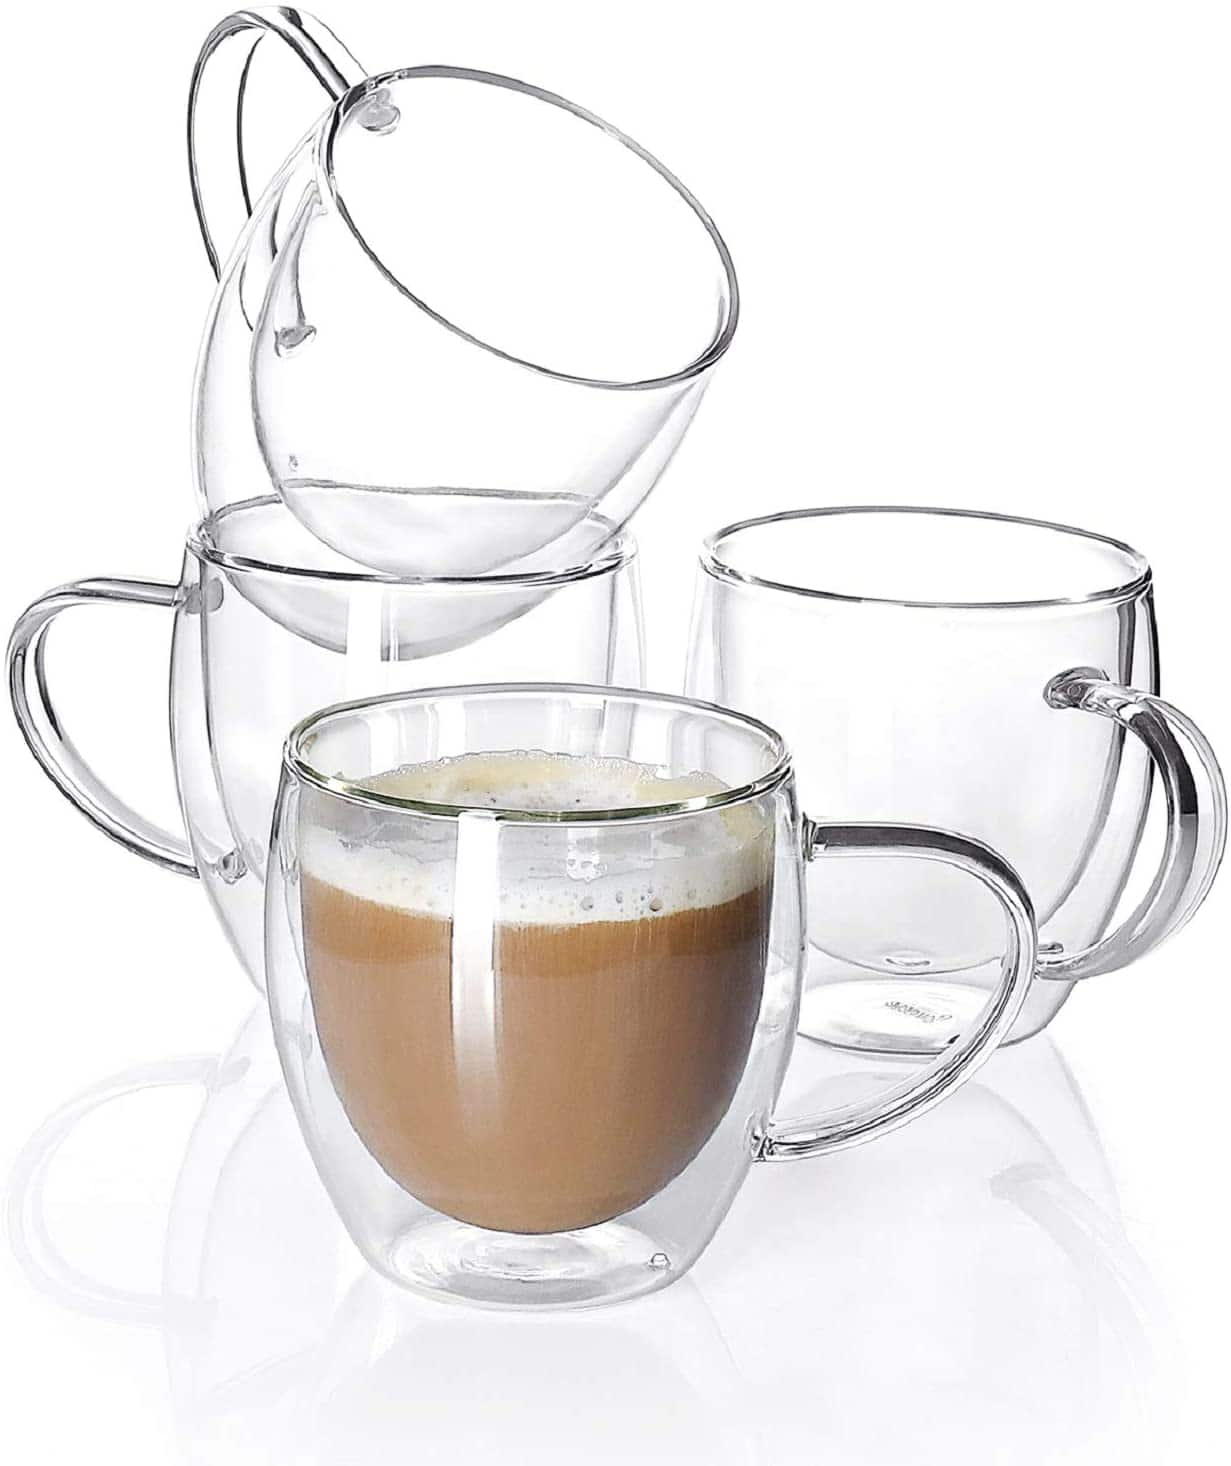 Sweese Glass coffee mugs for Espresso, Latte, Cappuccino, 8 oz - 4 Pack $18.59